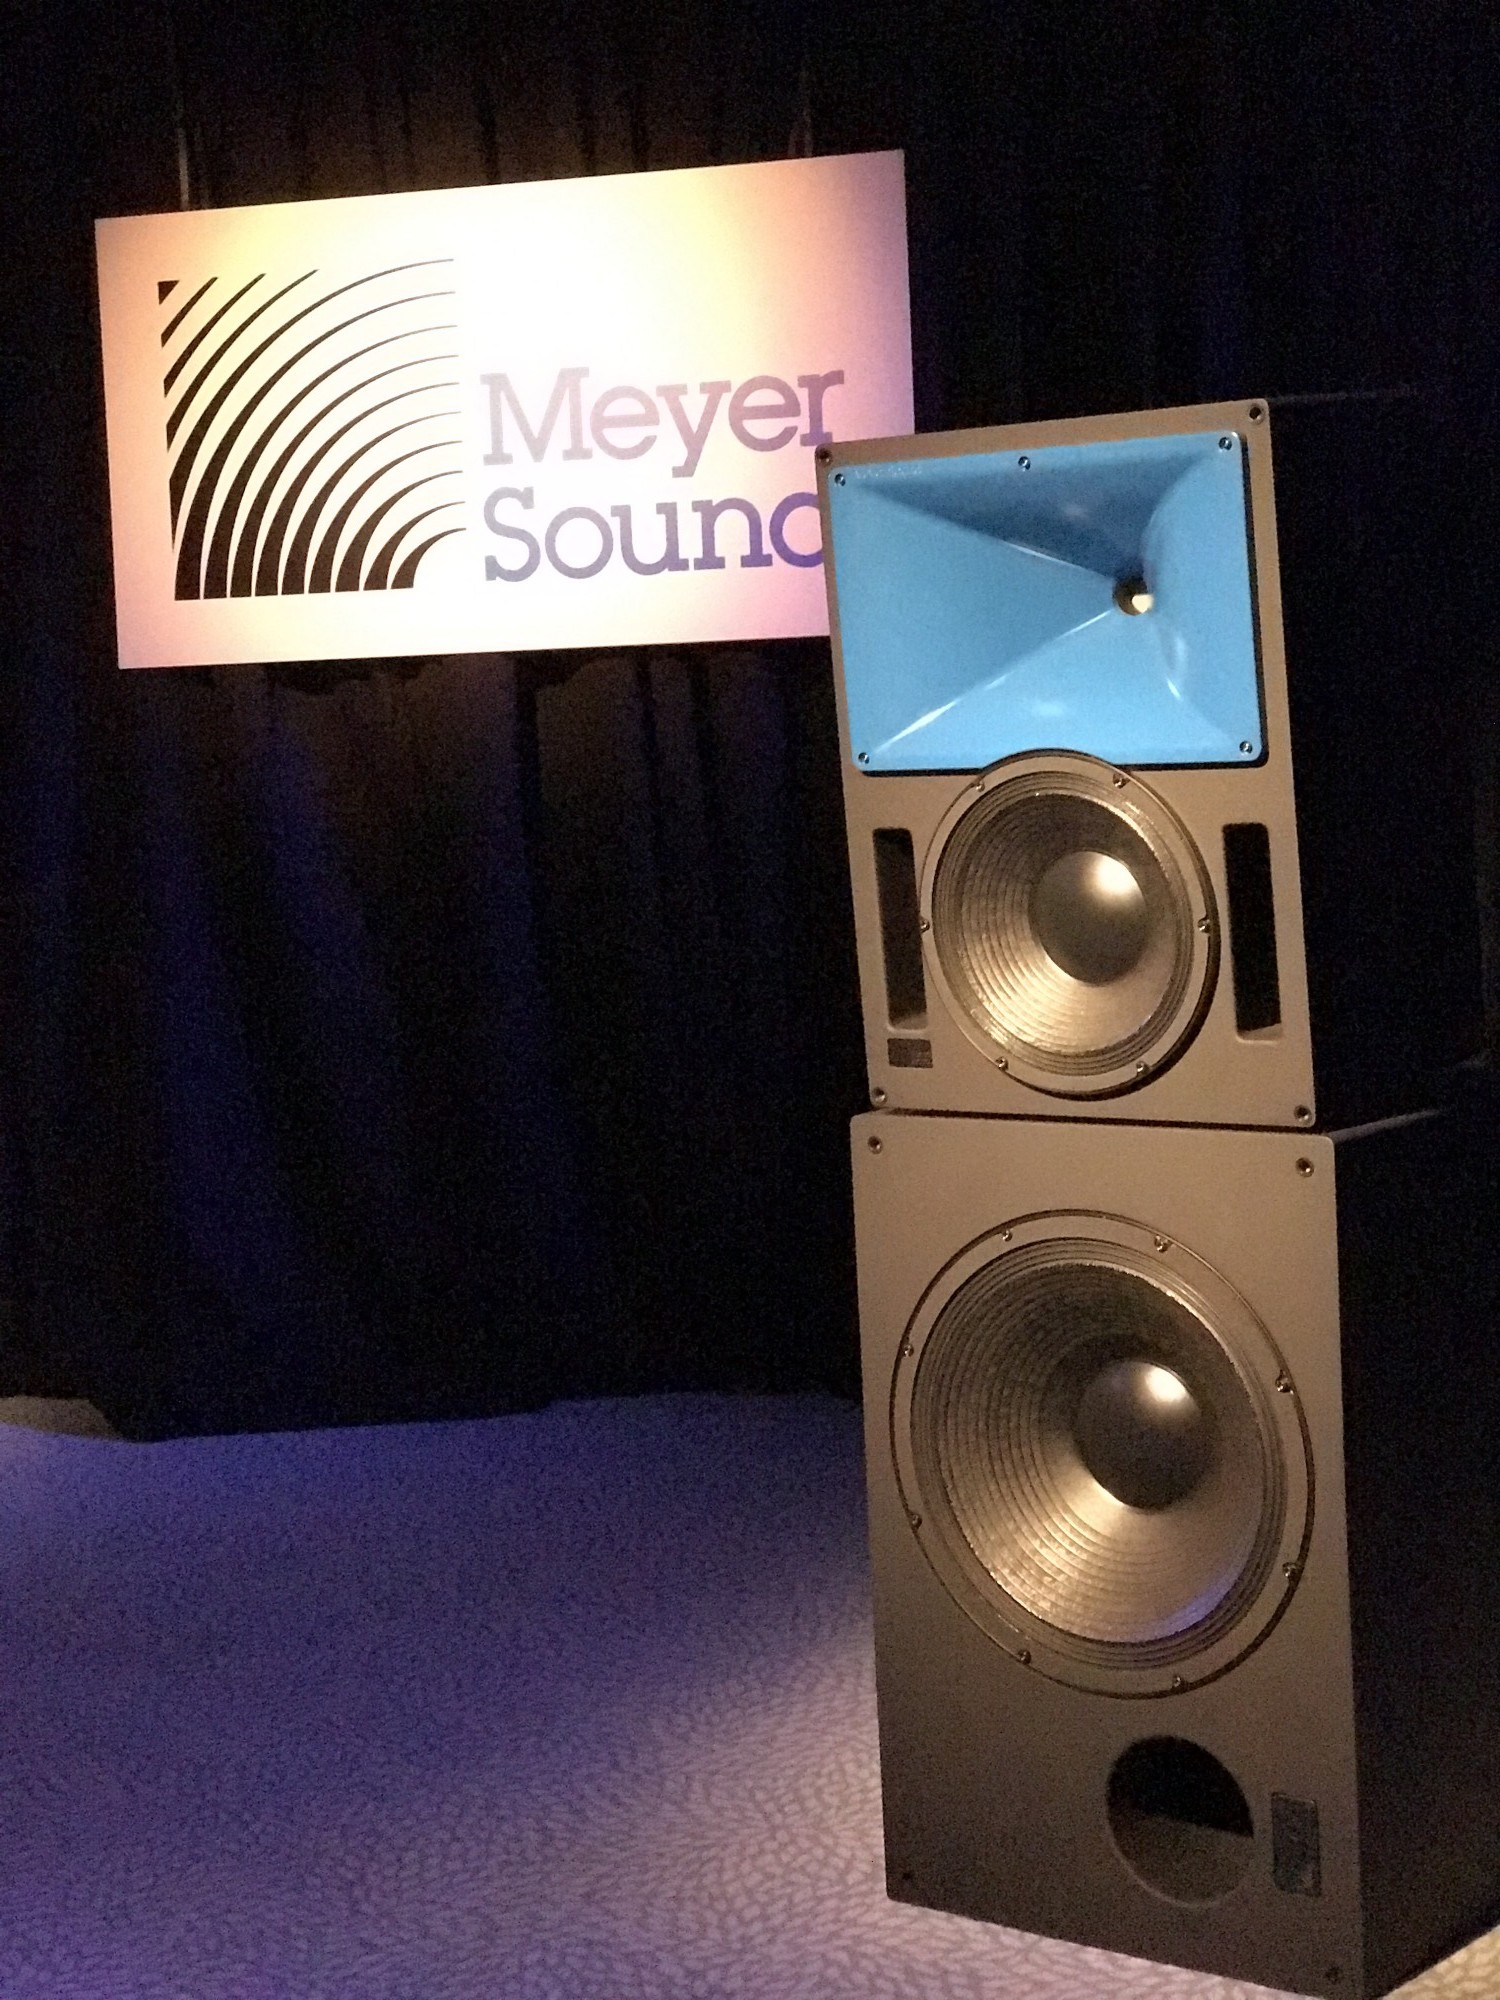 Écoute Meyer sound en Europe